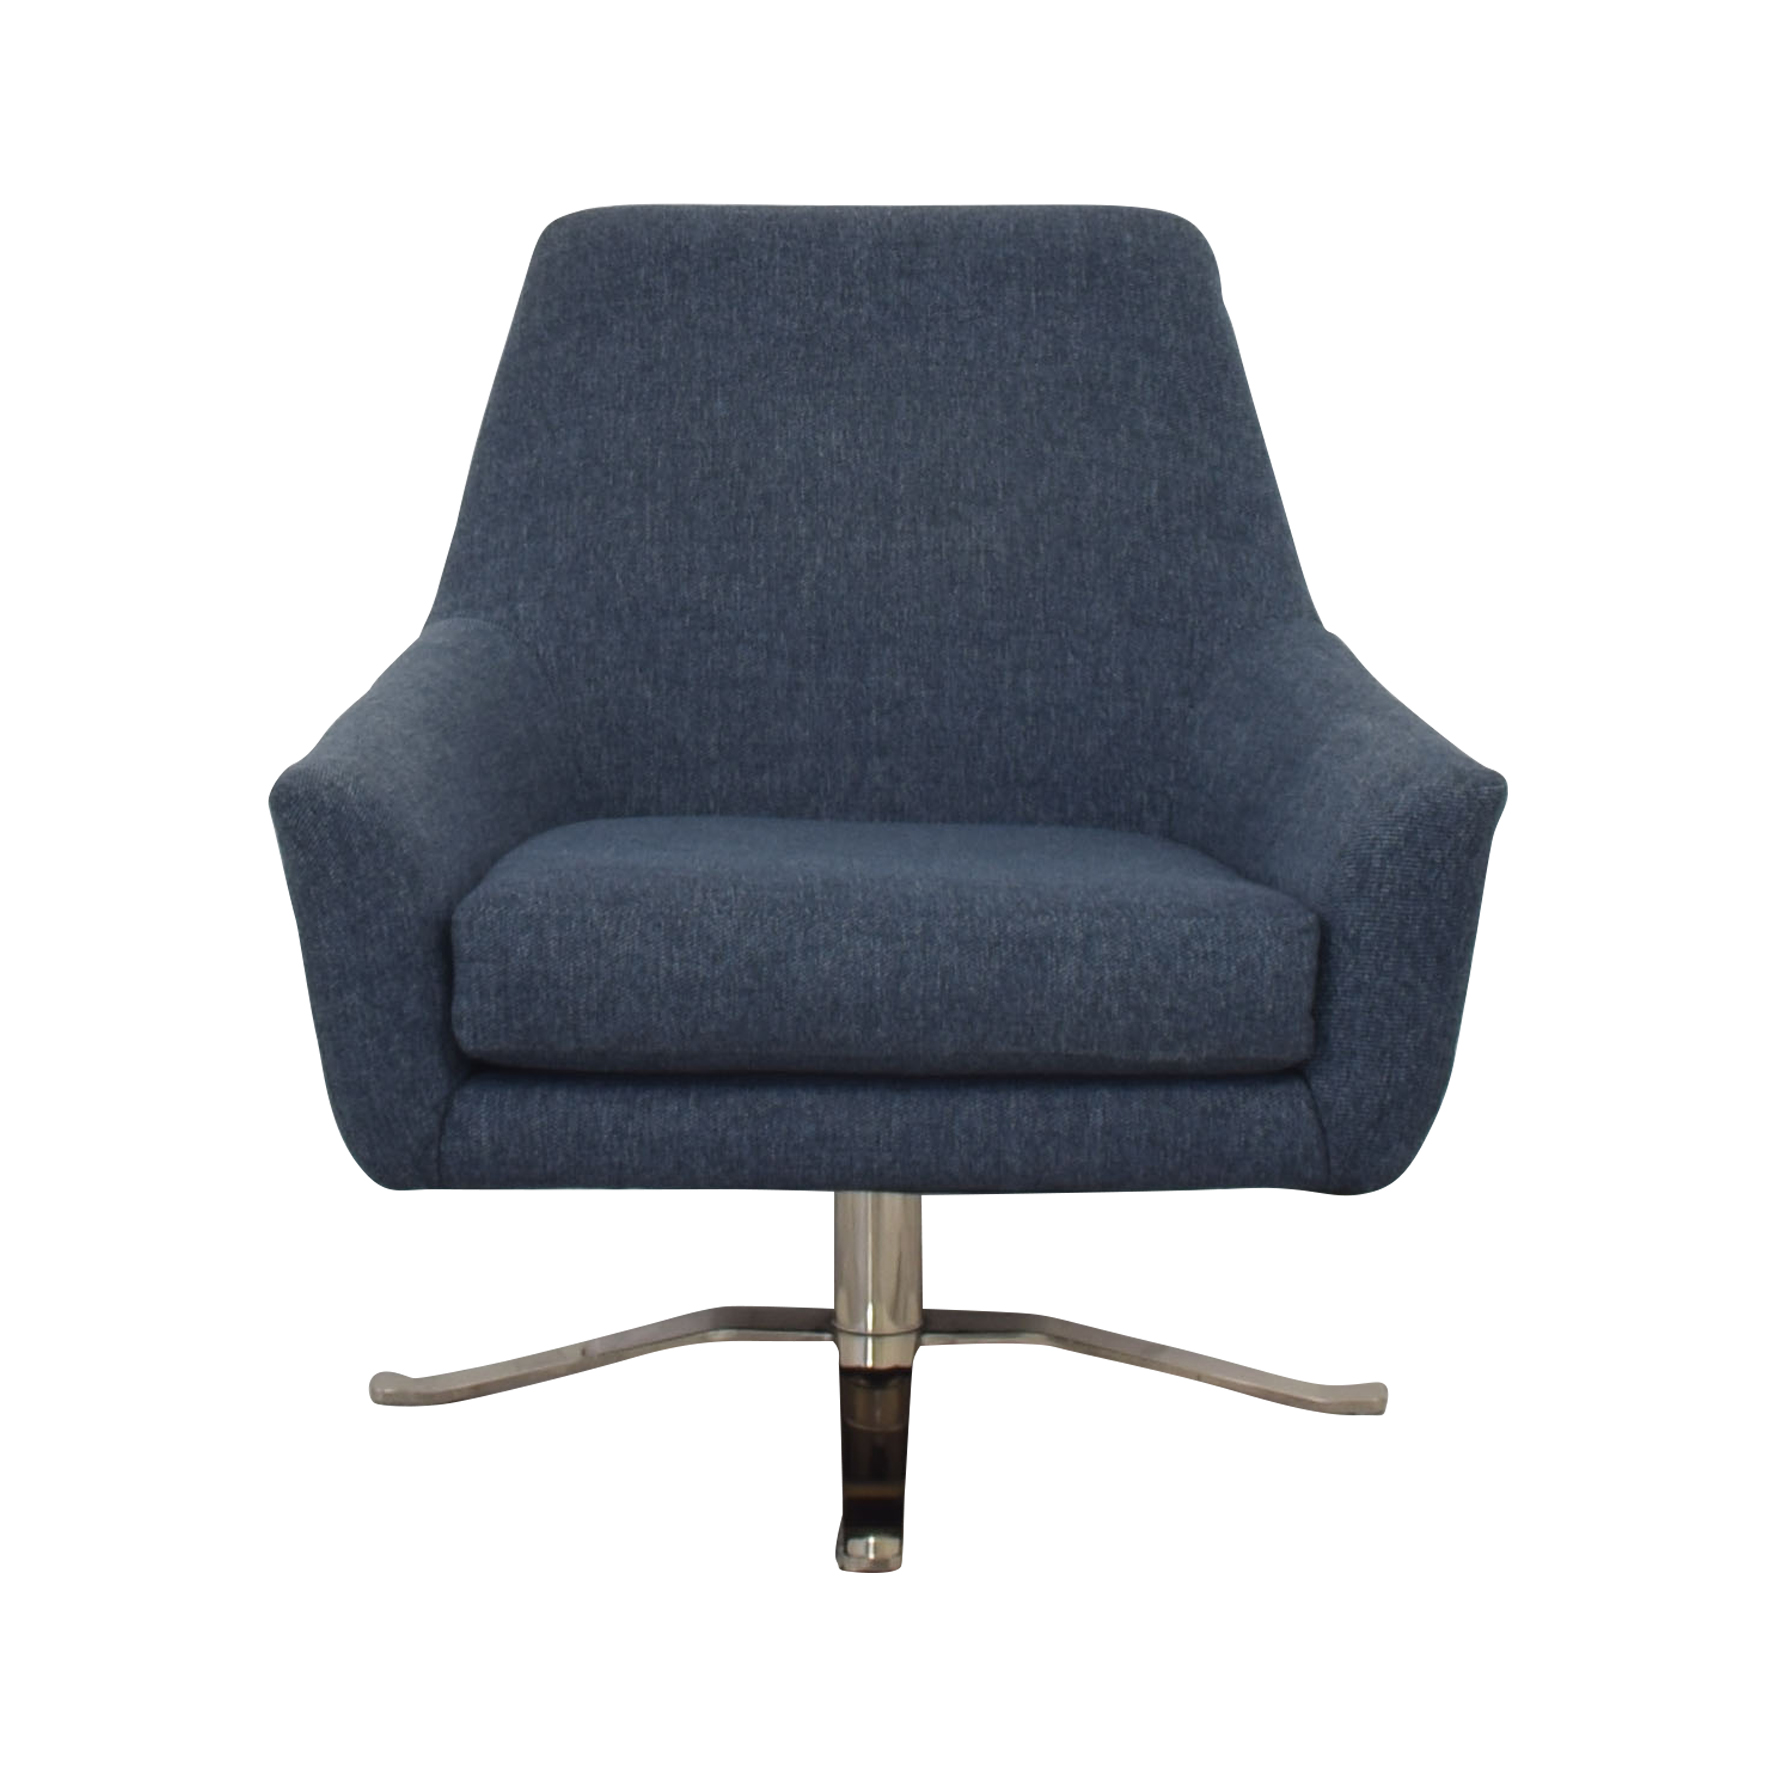 West Elm West Elm Lucas Swivel Base Chair discount